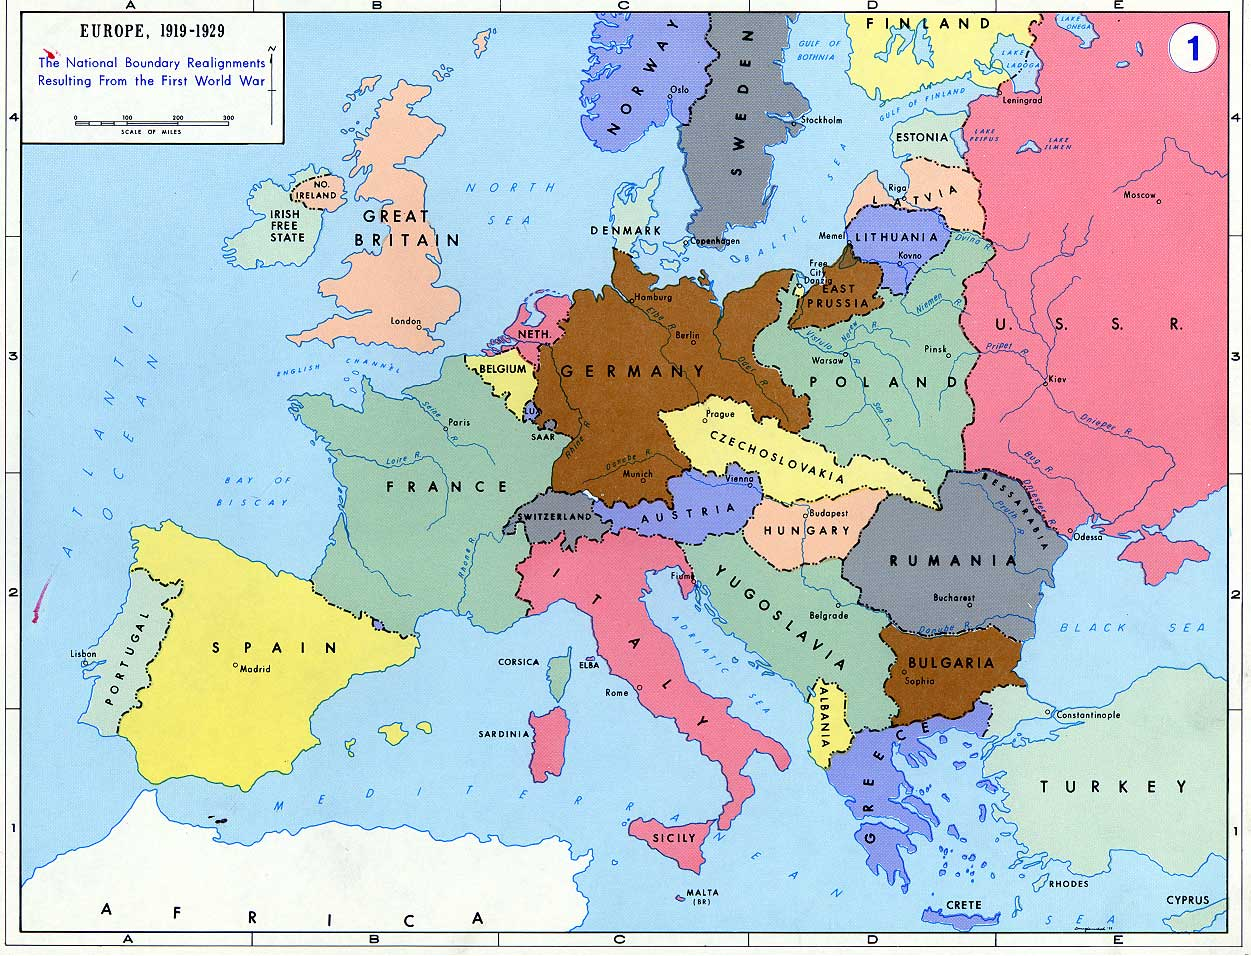 europe map world war 1914 with A Hundred Years Later By Uri Avnery on Maps besides marshallplan freeterritorytrieste further Language Map Of Europe 1914 Version 3 0 564286739 together with Hitlers Foreign Policy Nazi Expansion Road To Wwii further 282260019849.